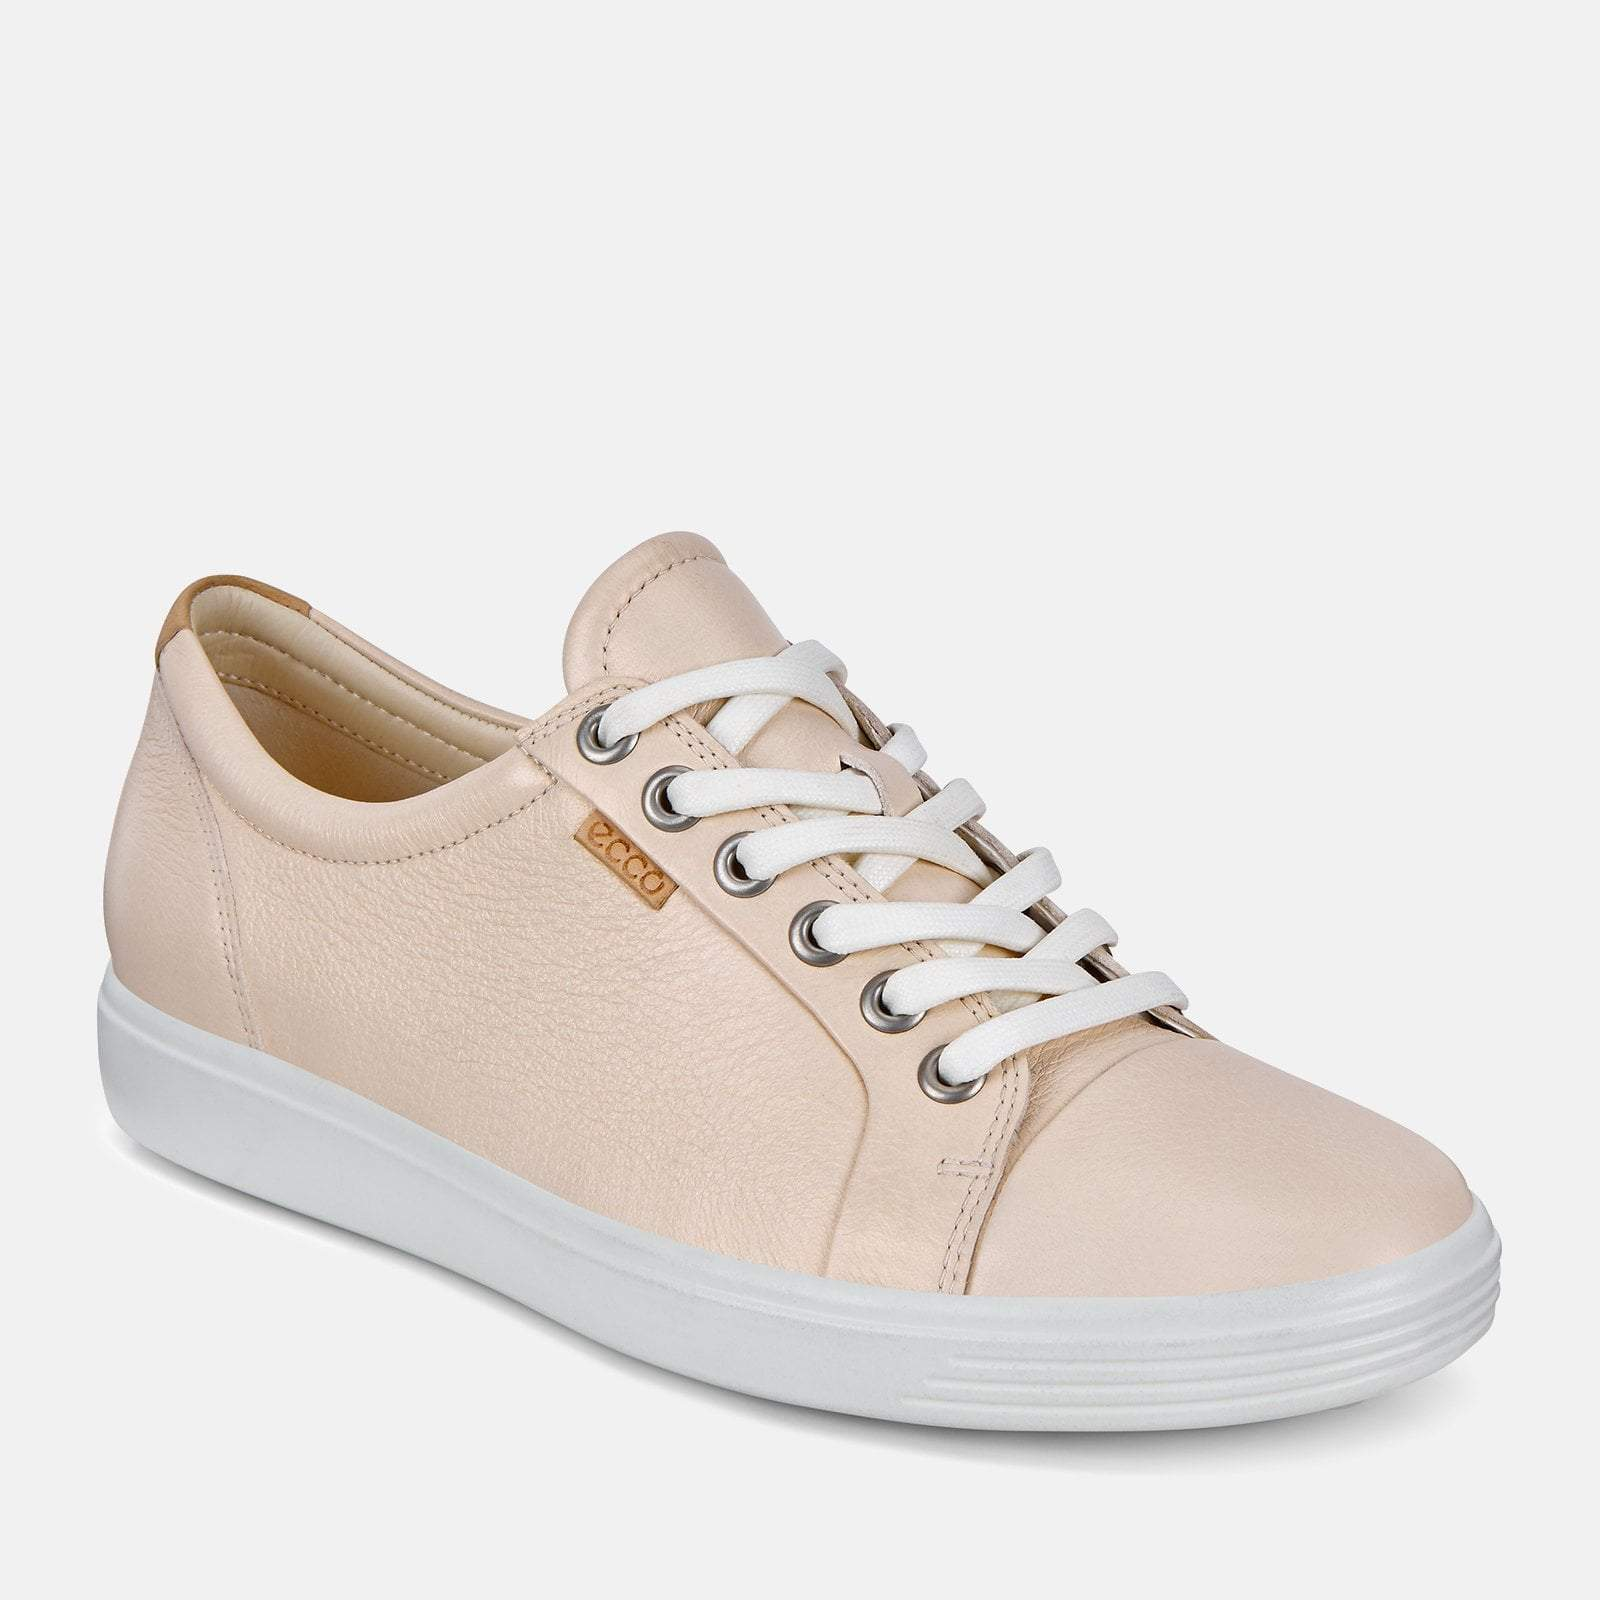 47eeec43b27ac Soft 7 W 430003 51381 Vanilla Metallic - Ecco Cream Soft Leather Ladie –  Bells Shoes